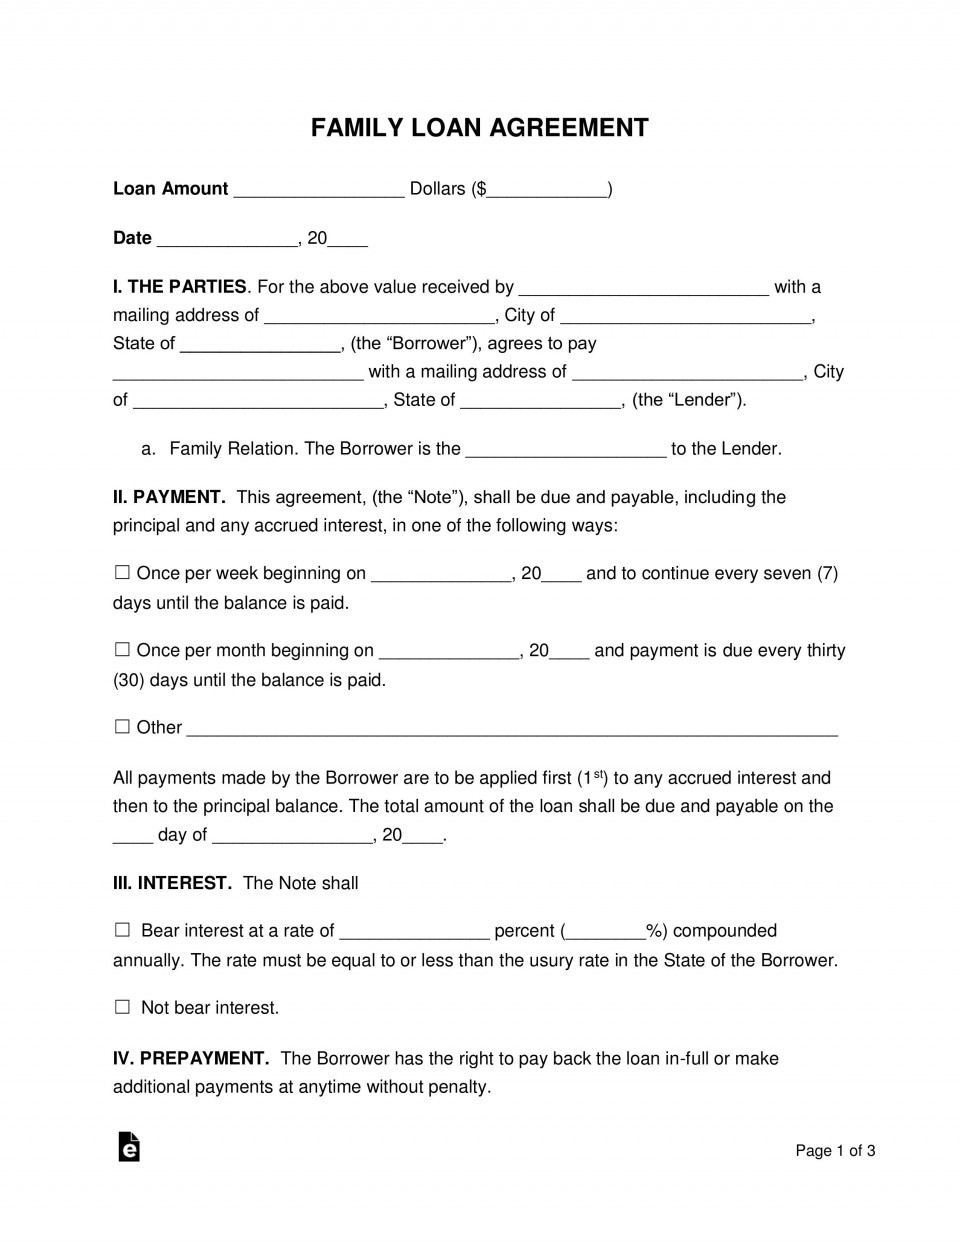 003 Awful Family Loan Agreement Template Idea  Nz Uk Free960